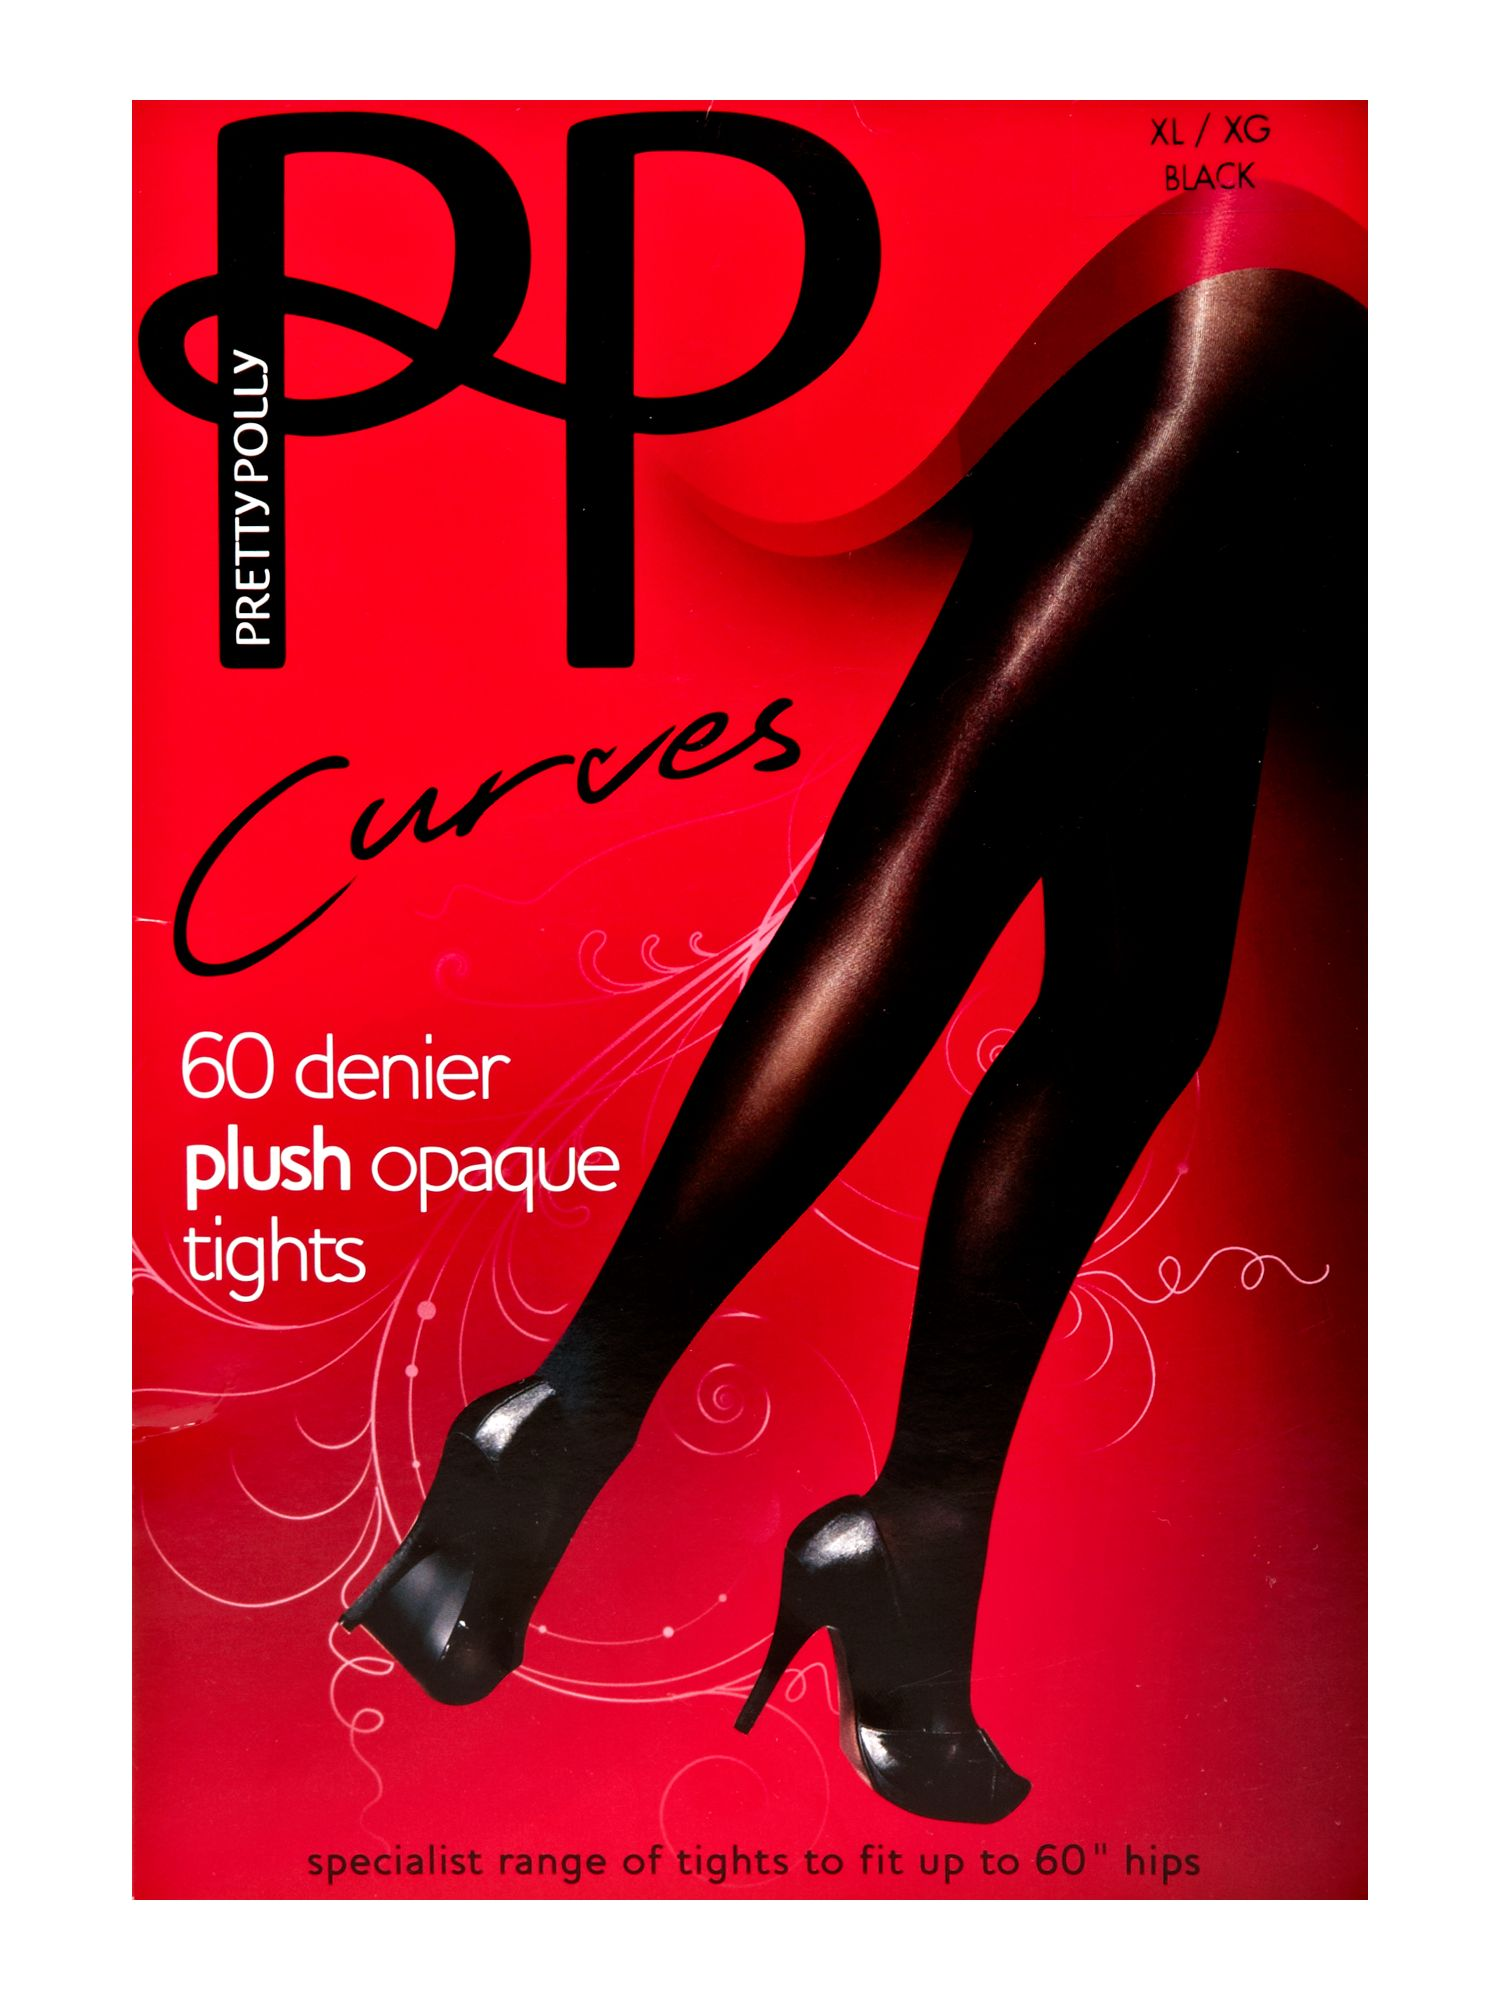 PP Curves 60 Denier plush opaque tights